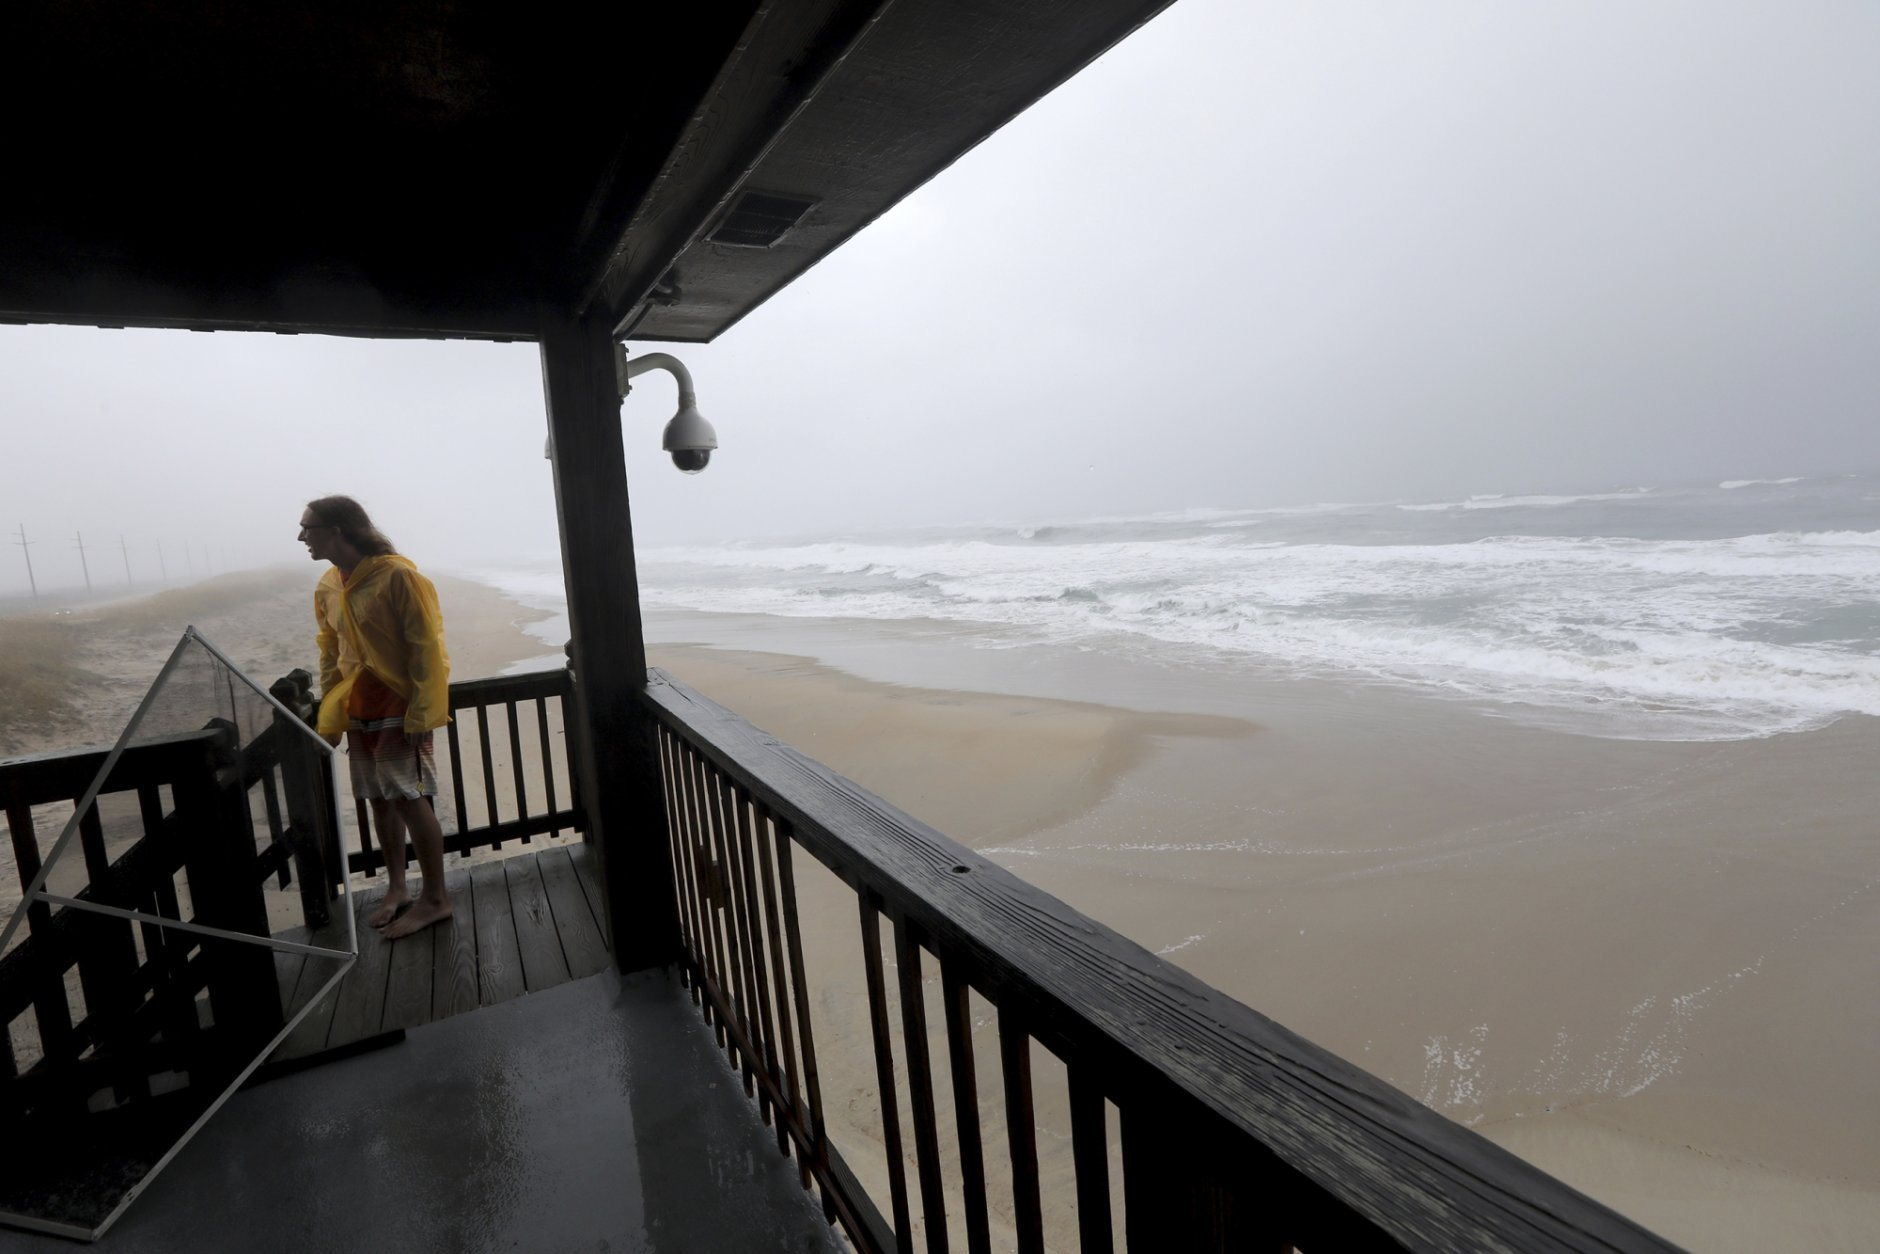 Hyatt Busbey gets a view of the ocean and sound as  Hurricane Dorian passes over Hatteras Island on Friday, Sept. 6, 2019 in Buxton, N.C. A weakened Hurricane Dorian flooded homes on North Carolina's Outer Banks on Friday with a ferocity that seemed to take storm-hardened residents by surprise. (Steve Earley/The Virginian-Pilot via AP)